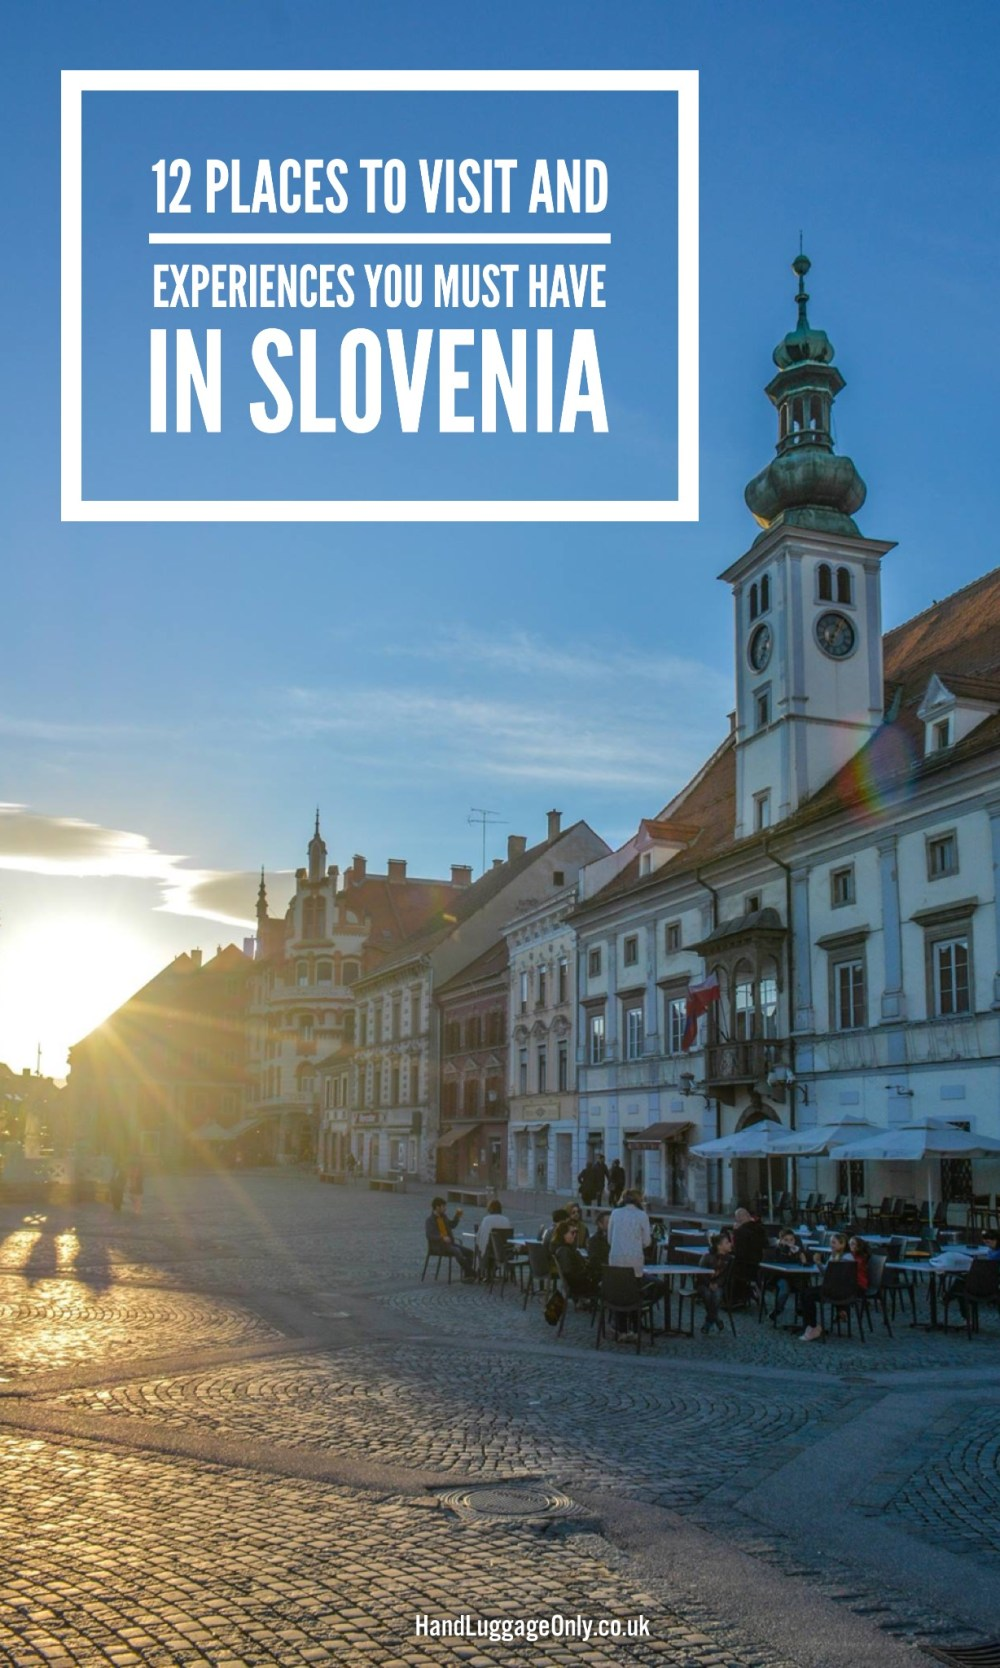 12 Places To Visit (And Experiences You Must Have) In Slovenia